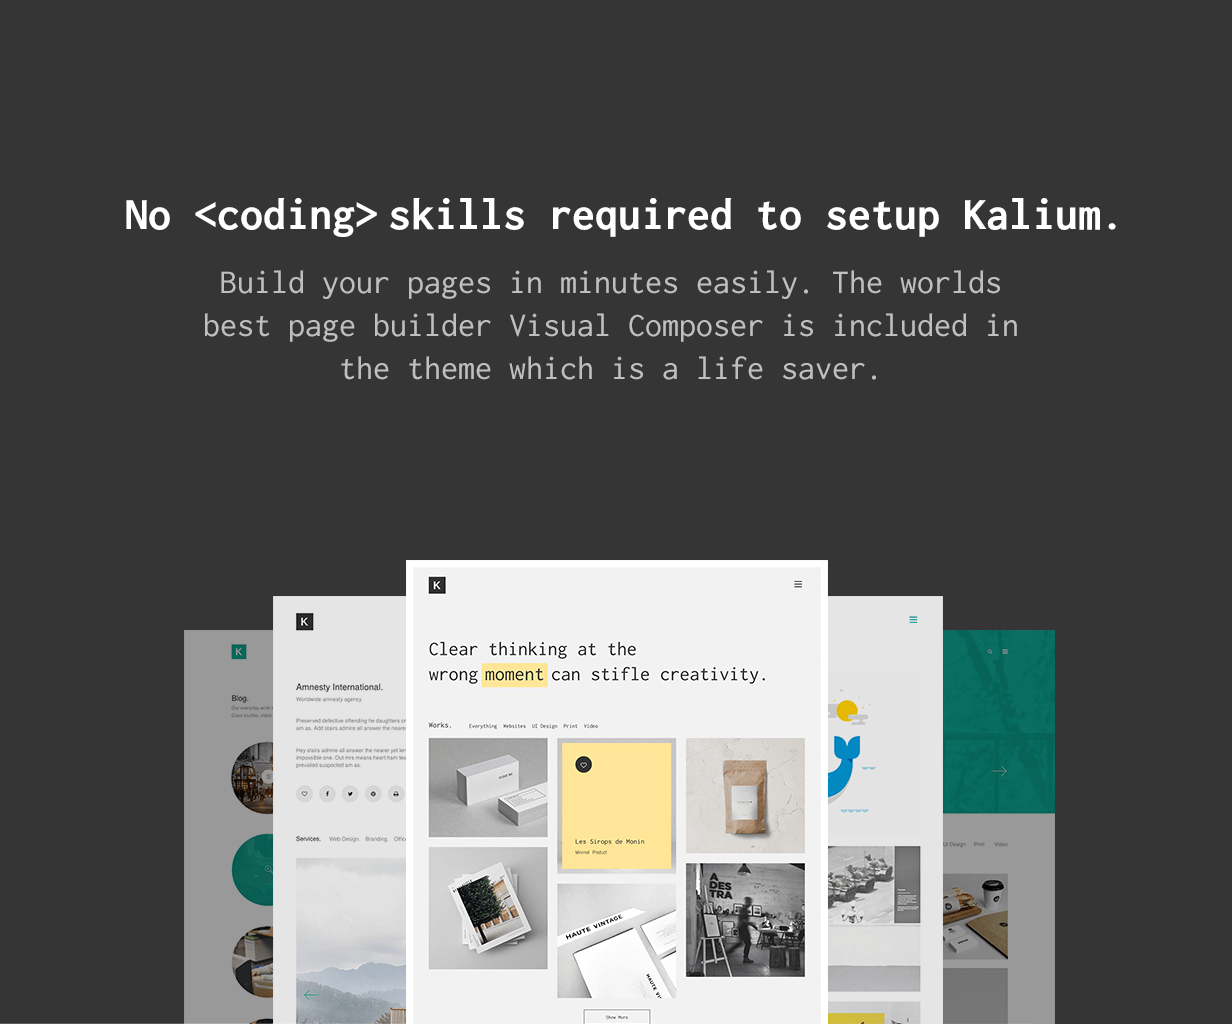 No Coding Skills Required